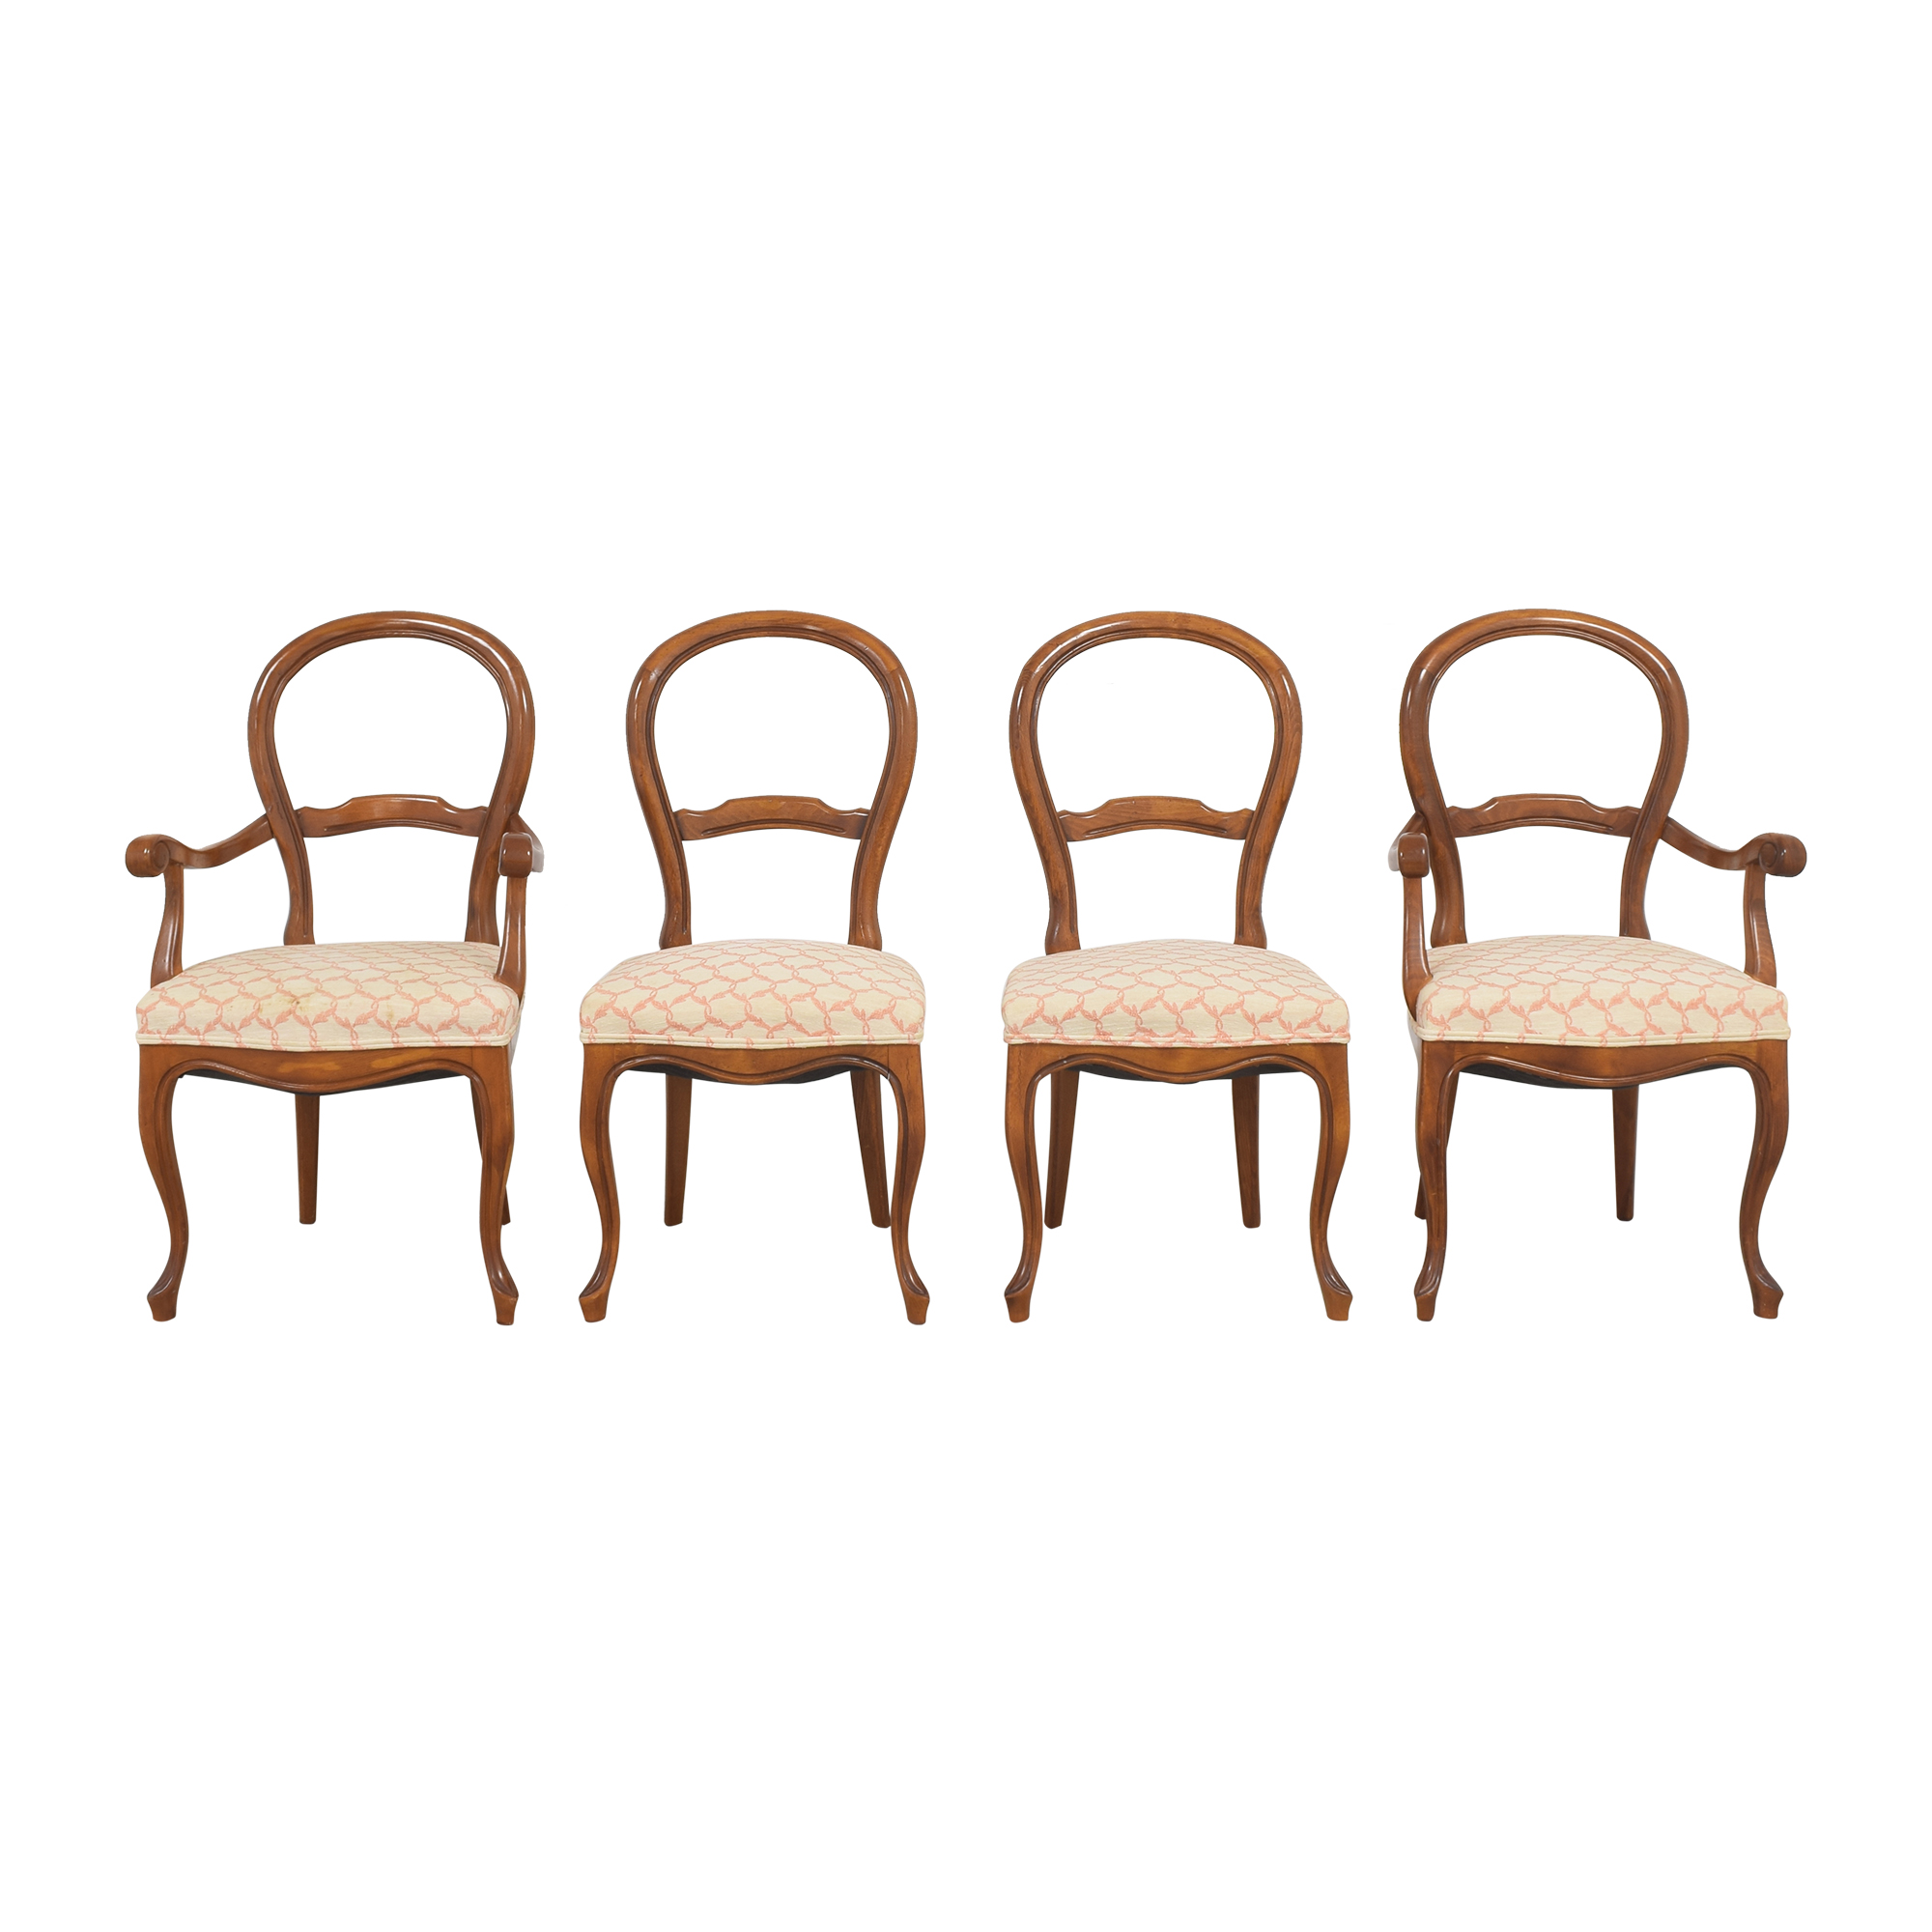 buy Grange Upholstered Dining Chairs Grange Dining Chairs